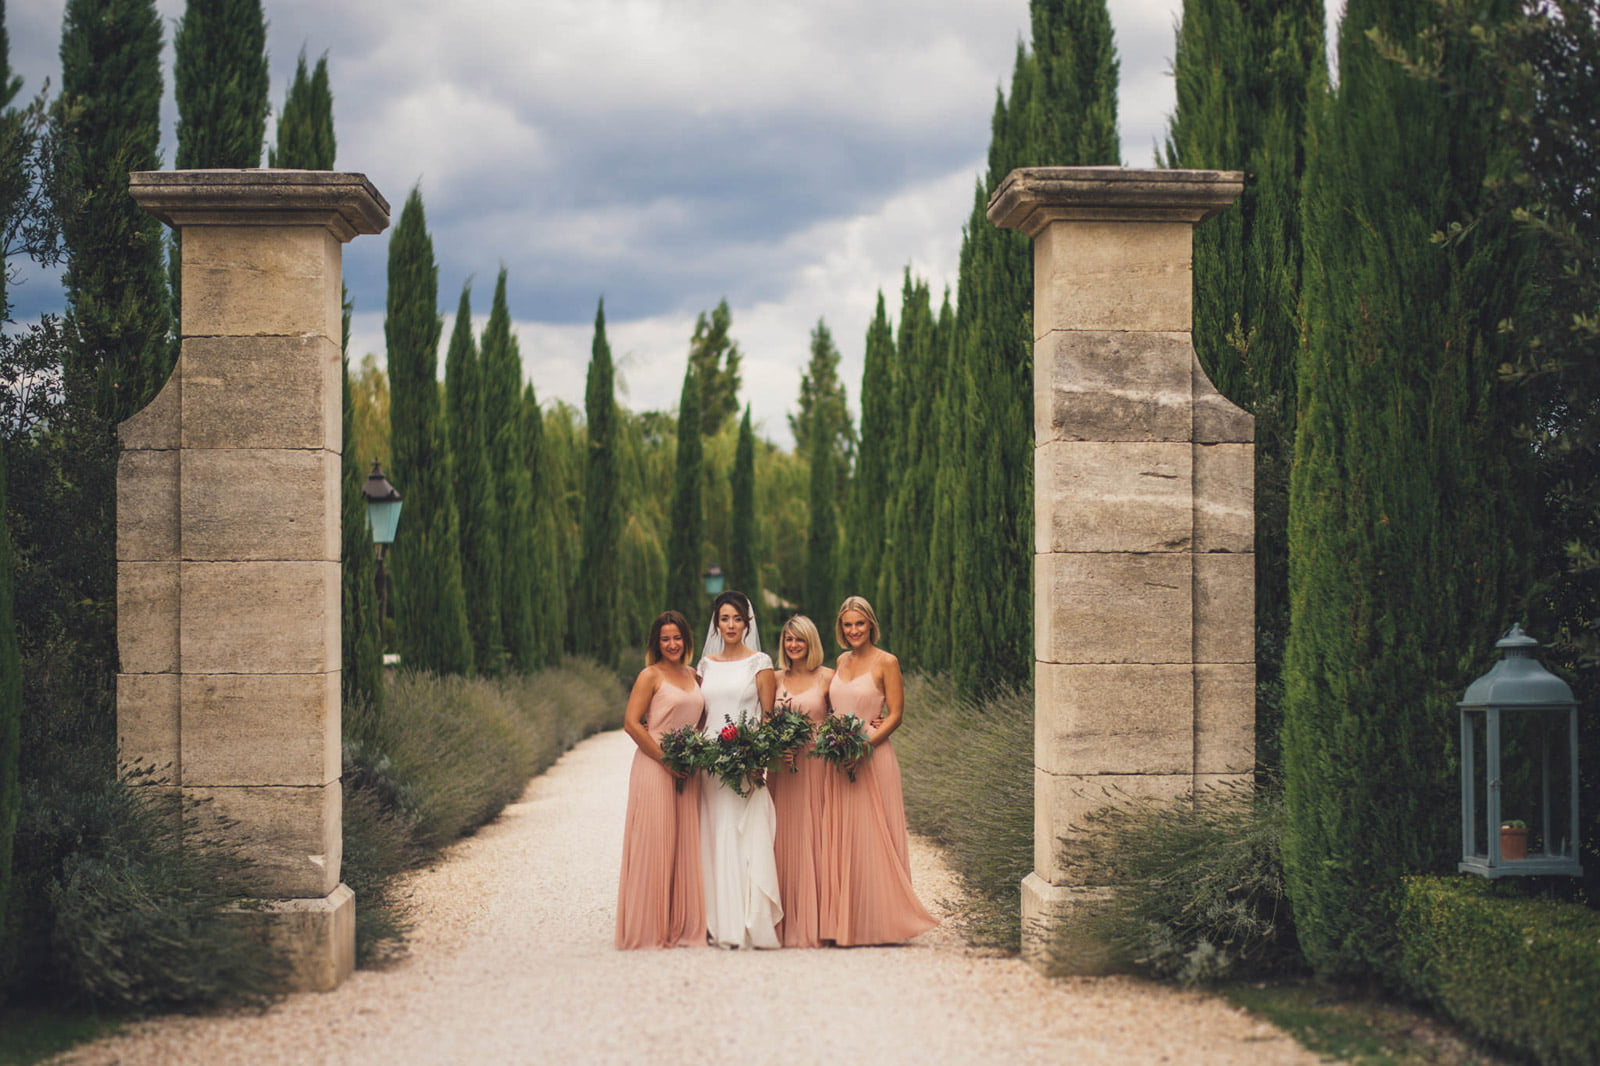 037-wedding-tuscany-san-galgano-federico-pannacci-photographer